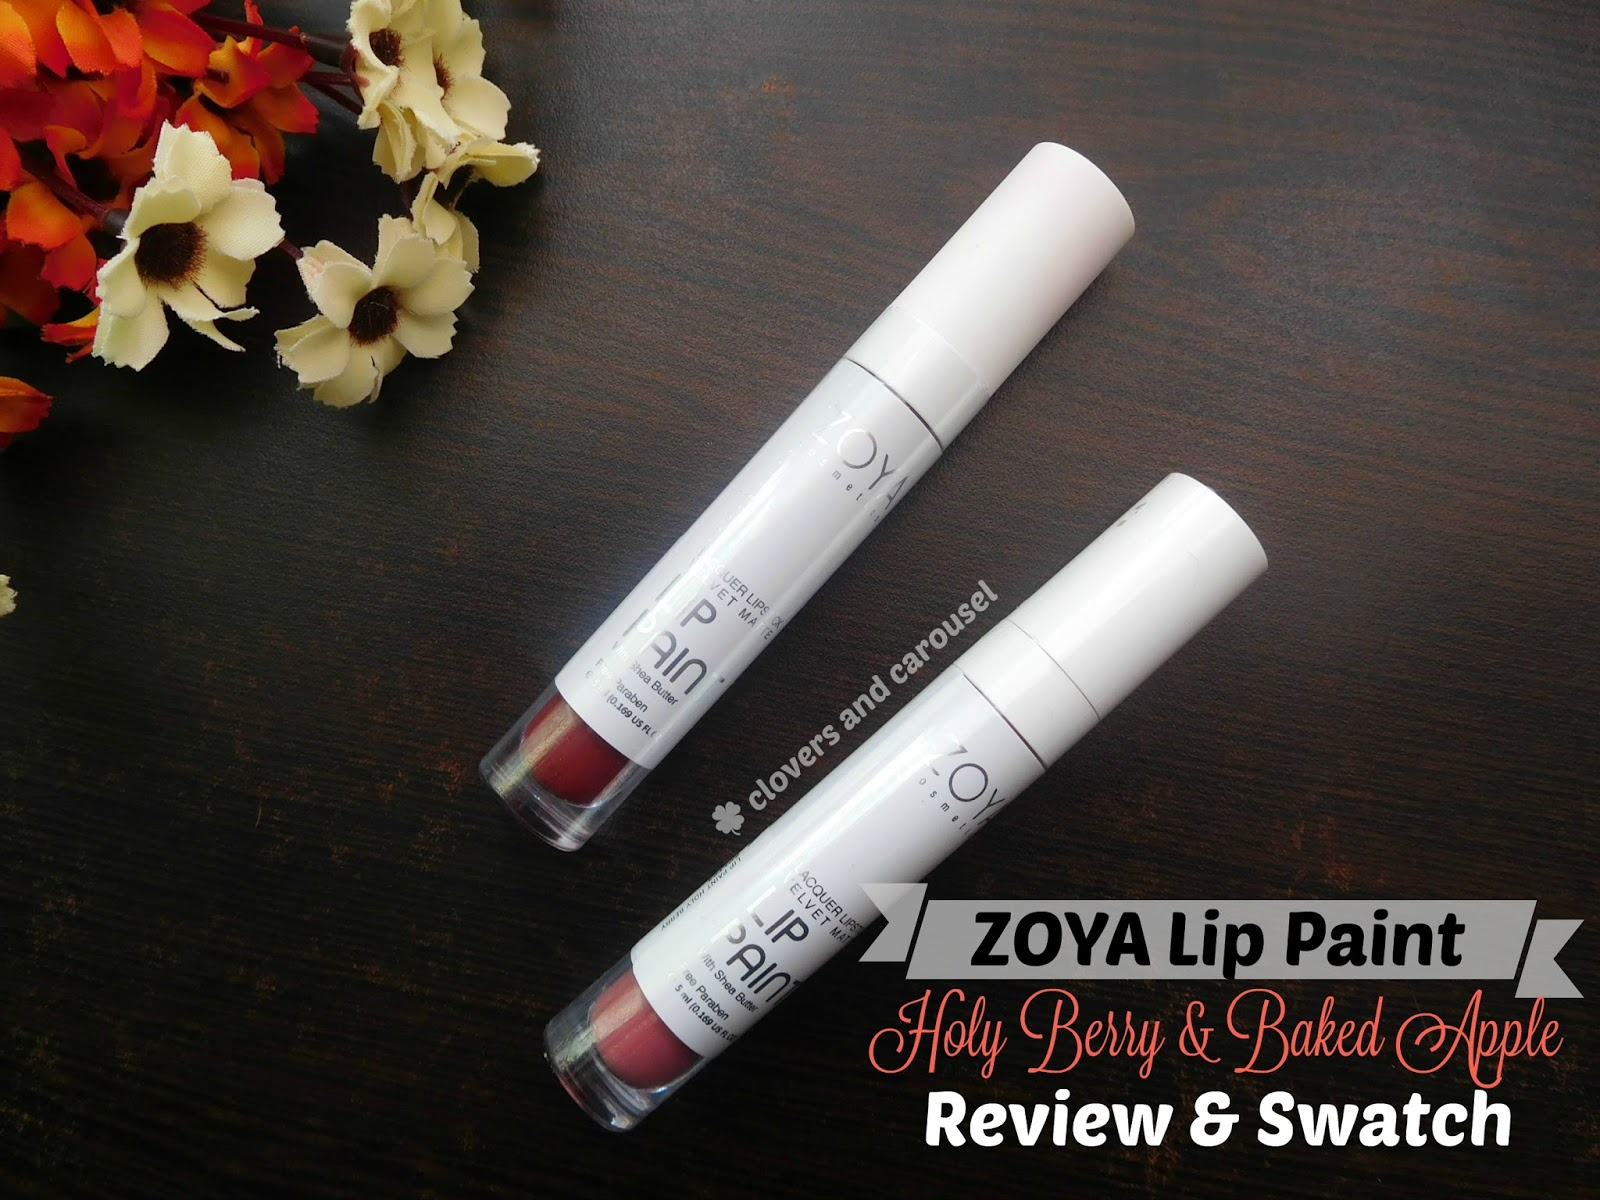 Clovers And Carousel Zoya Lip Paint Lacquer Lipstick Velvet Matte Review Swatch